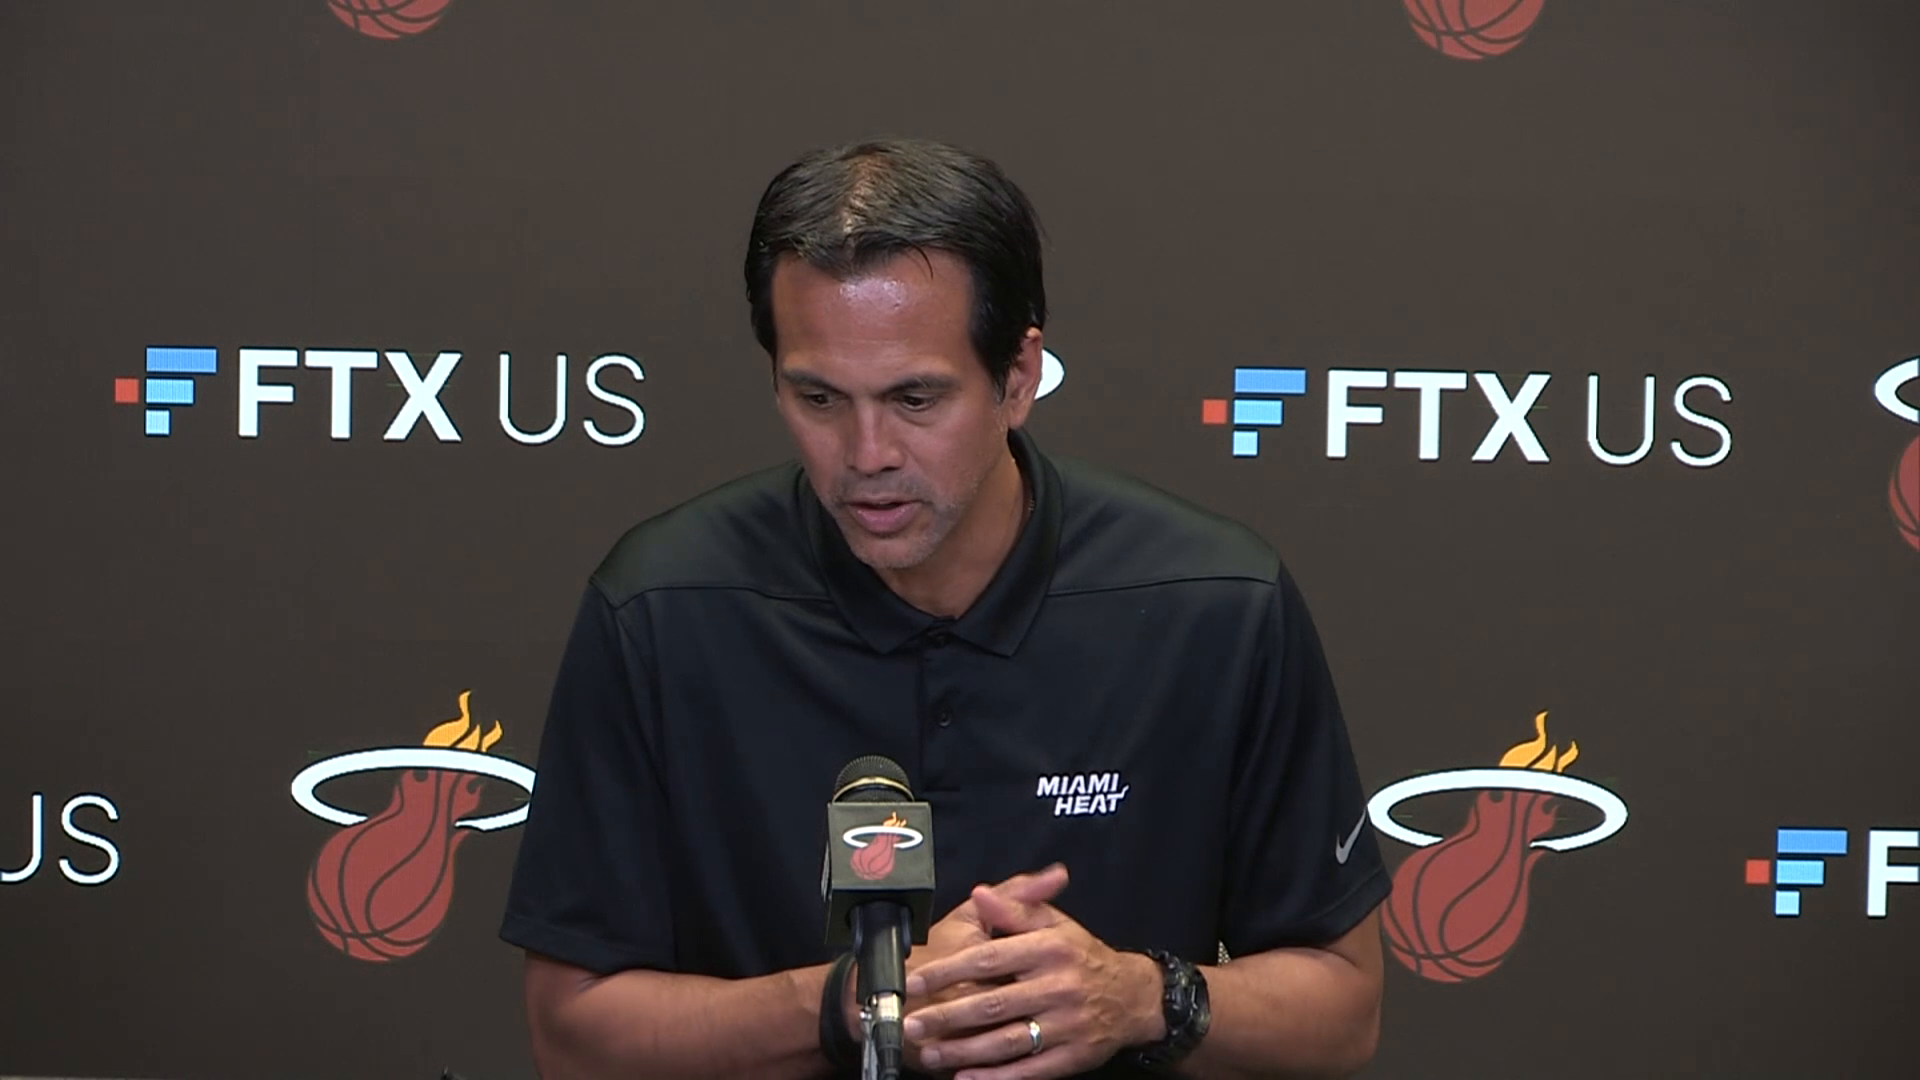 Coach Spo On The Development Of The Young Players